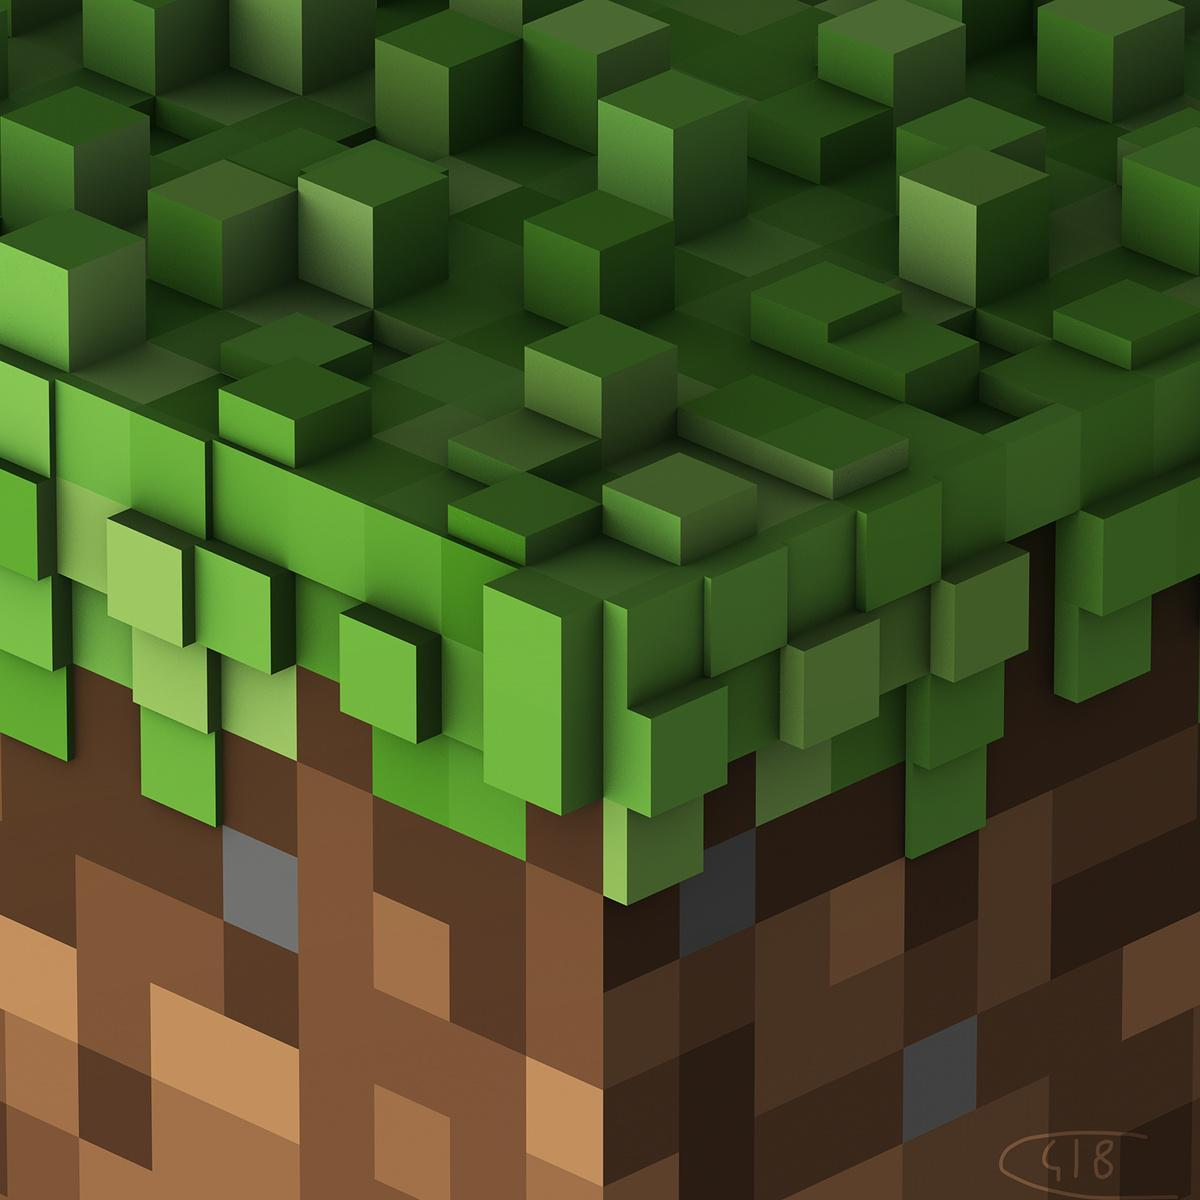 What is your place in the world of Minecraft?